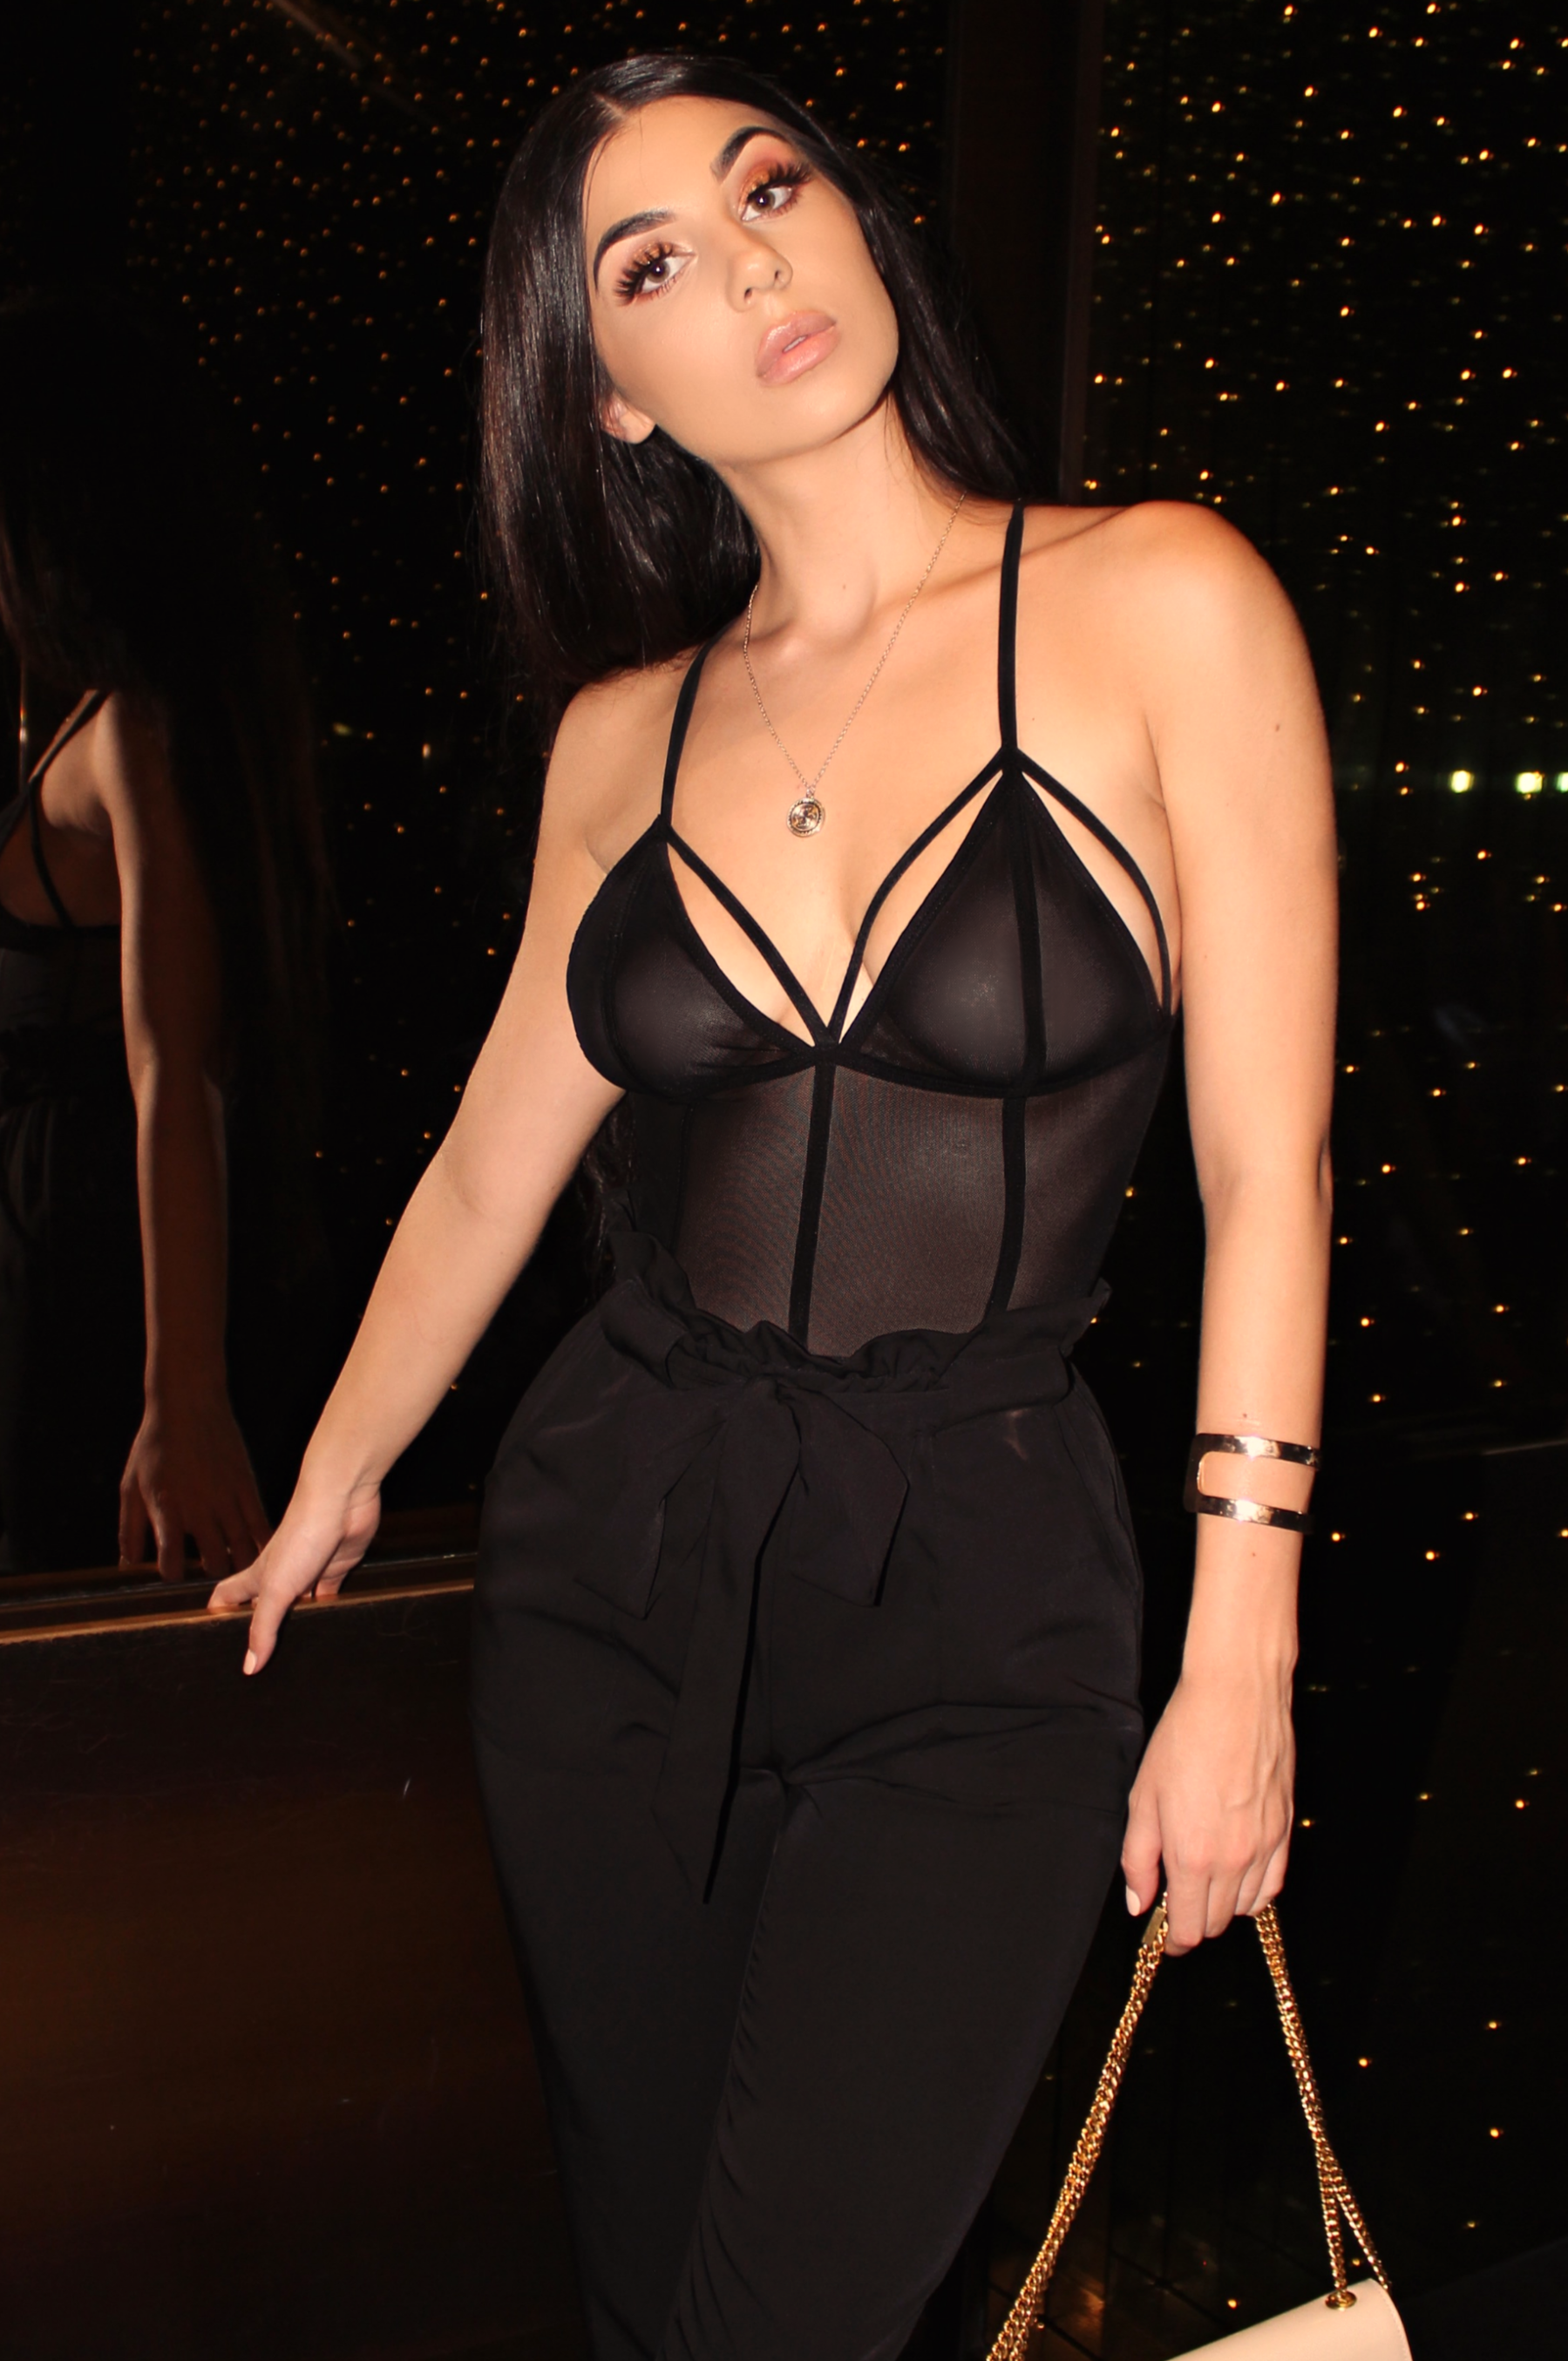 NIGHT LIFE MESH BODYSUIT